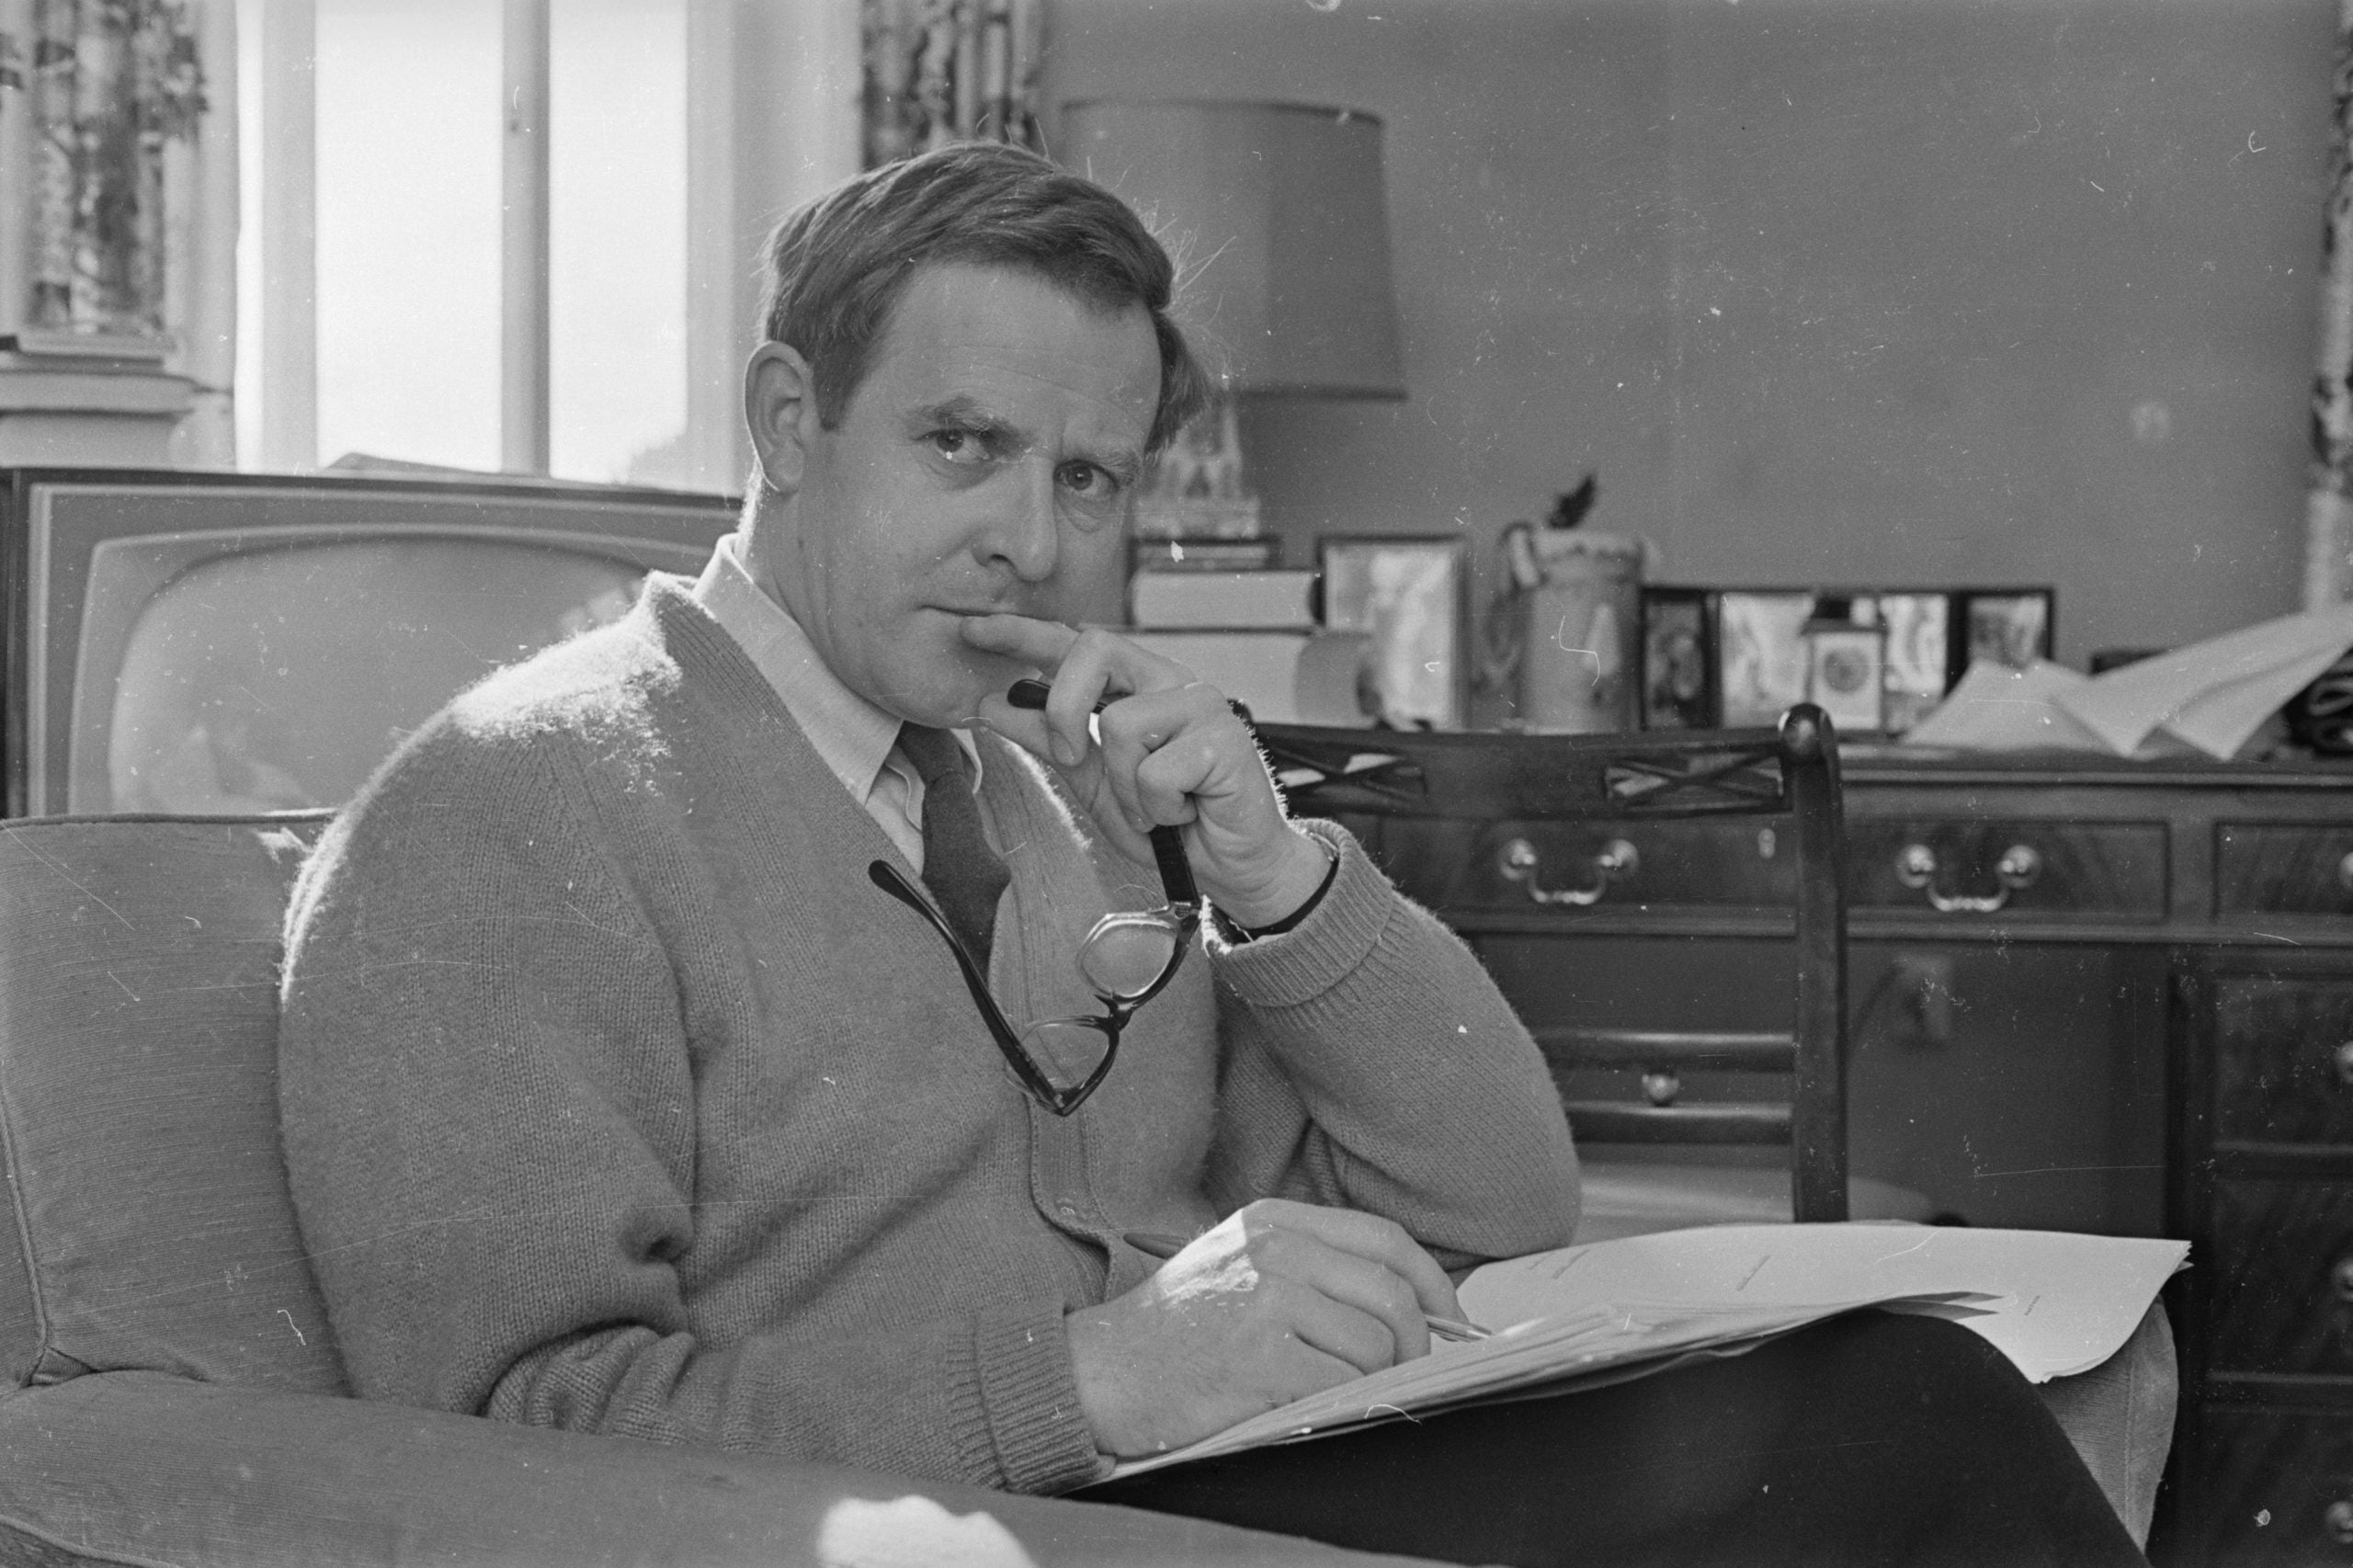 From the NS Archive: The secrets of John le Carré